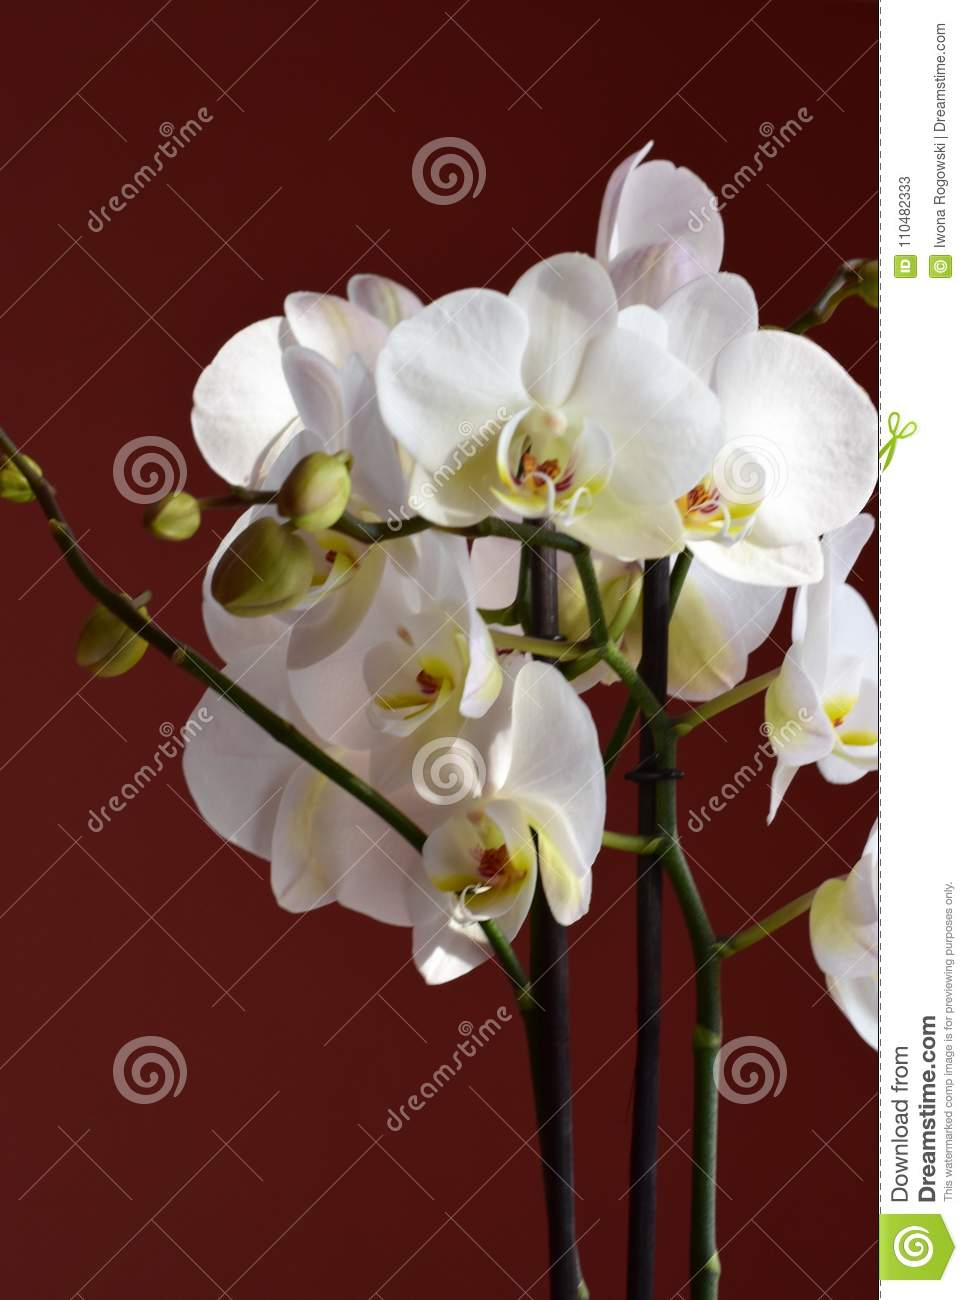 White orchid flower stock image image of color flowers 110482333 download white orchid flower stock image image of color flowers 110482333 mightylinksfo